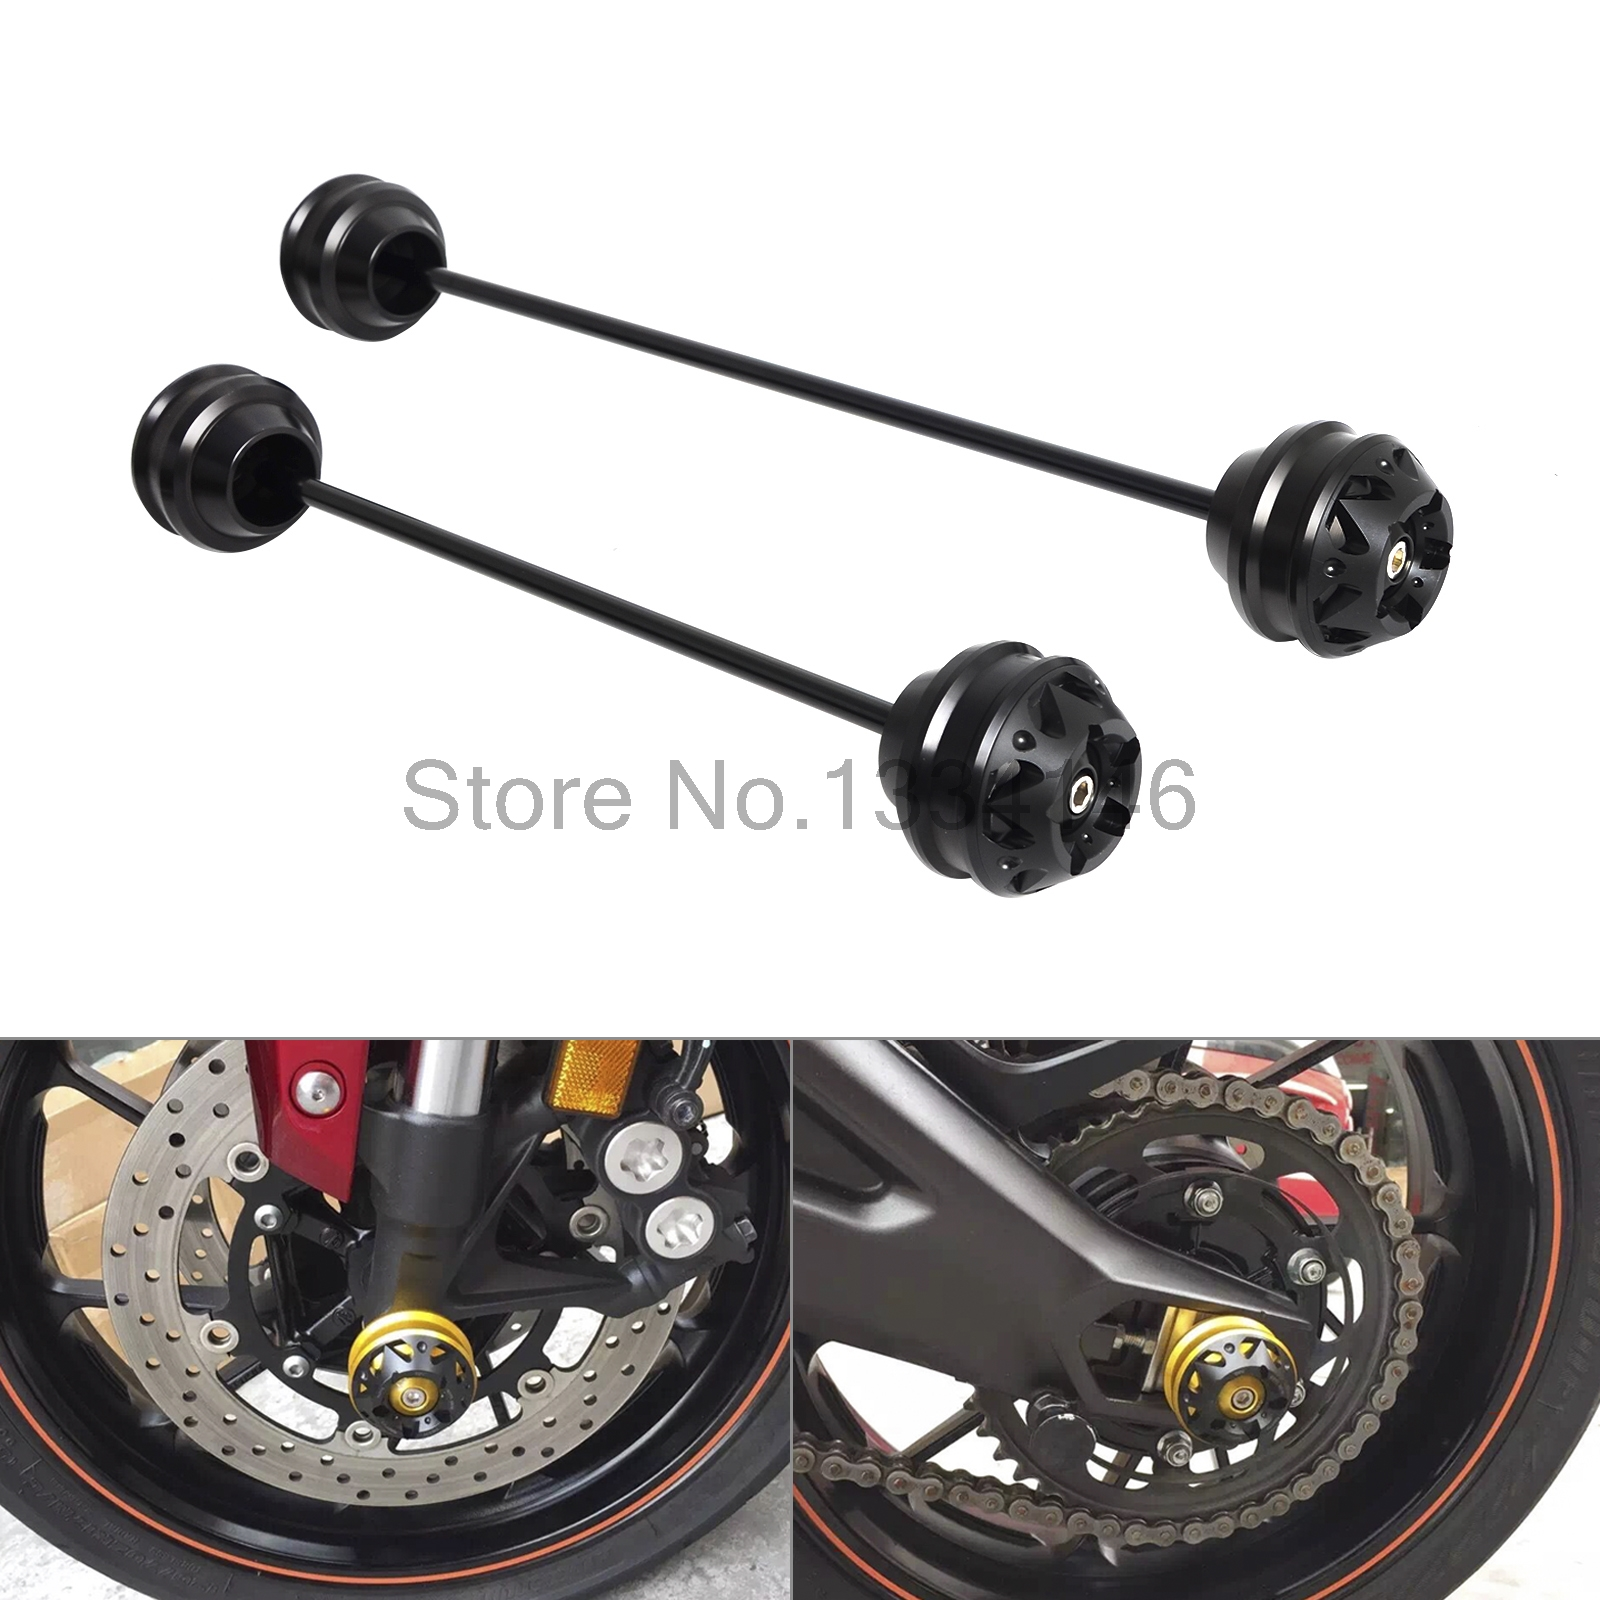 Front Rear Axle Fork Sliders Crash Protector For BMW S1000R S1000RR S1000XR S 1000R 1000RR 1000XR 2010-2016 2017 HP4 2012-2014 ca bm001 bk new motorcycle cnc billet rear axle spindle chain adjuster blocks for bmw hp4 2012 2014 s1000r 2013 2015 s1000rr 09